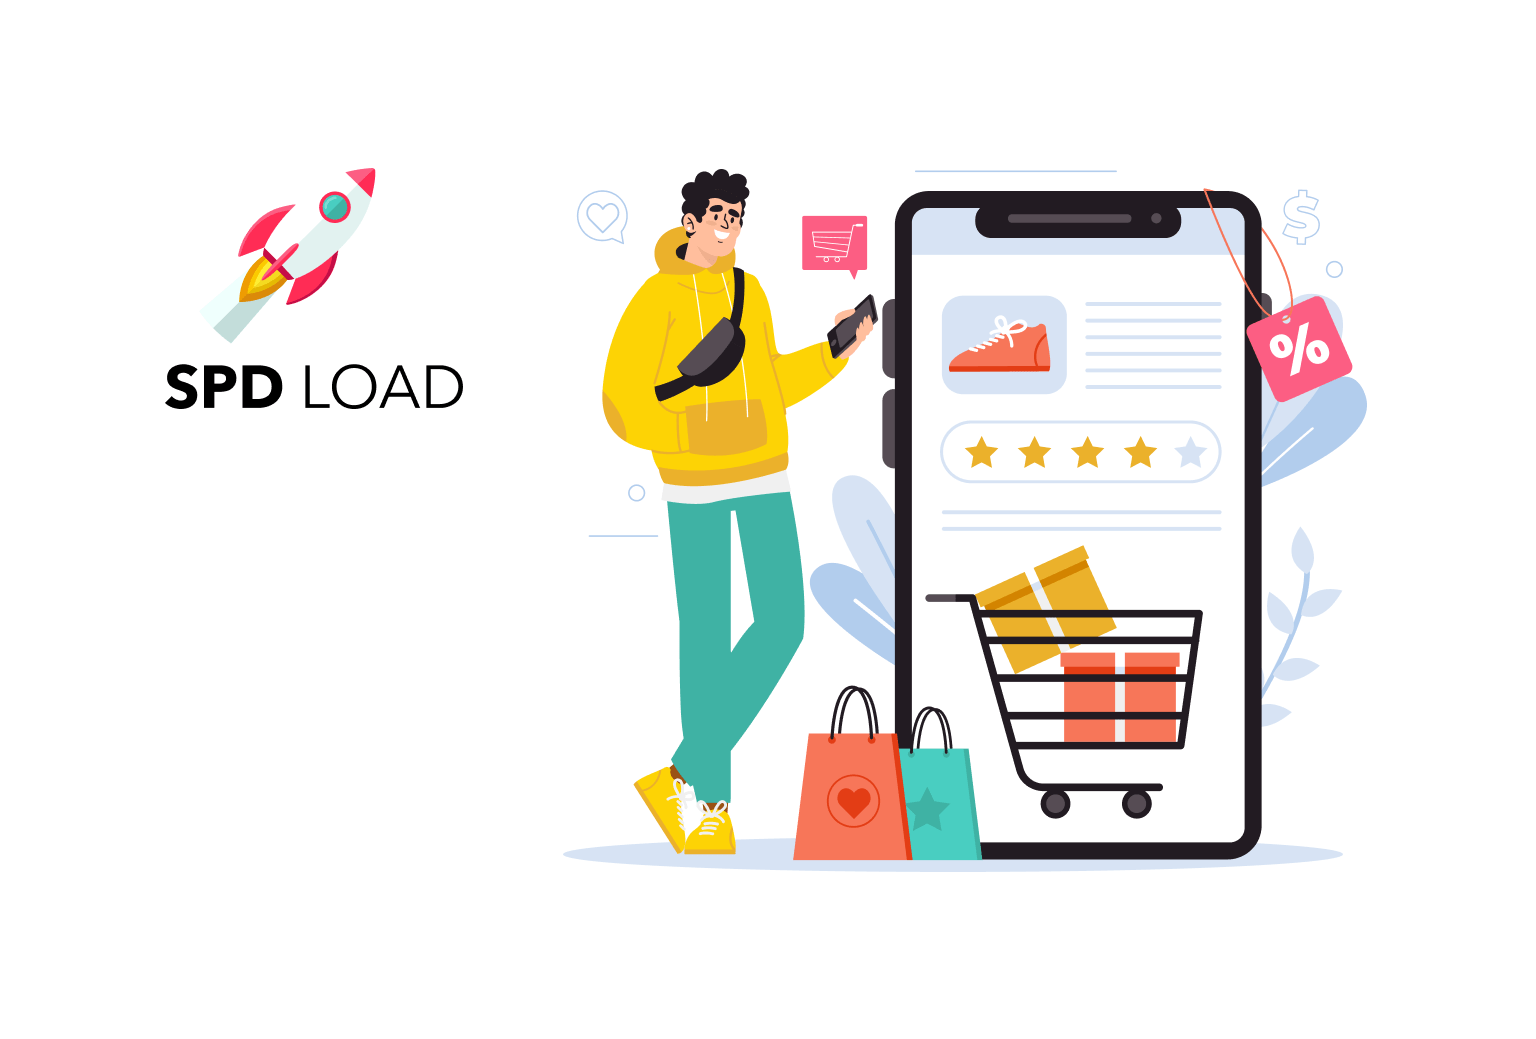 SpdLoad prepared an in-depth guide on how to develop an ecommerce app